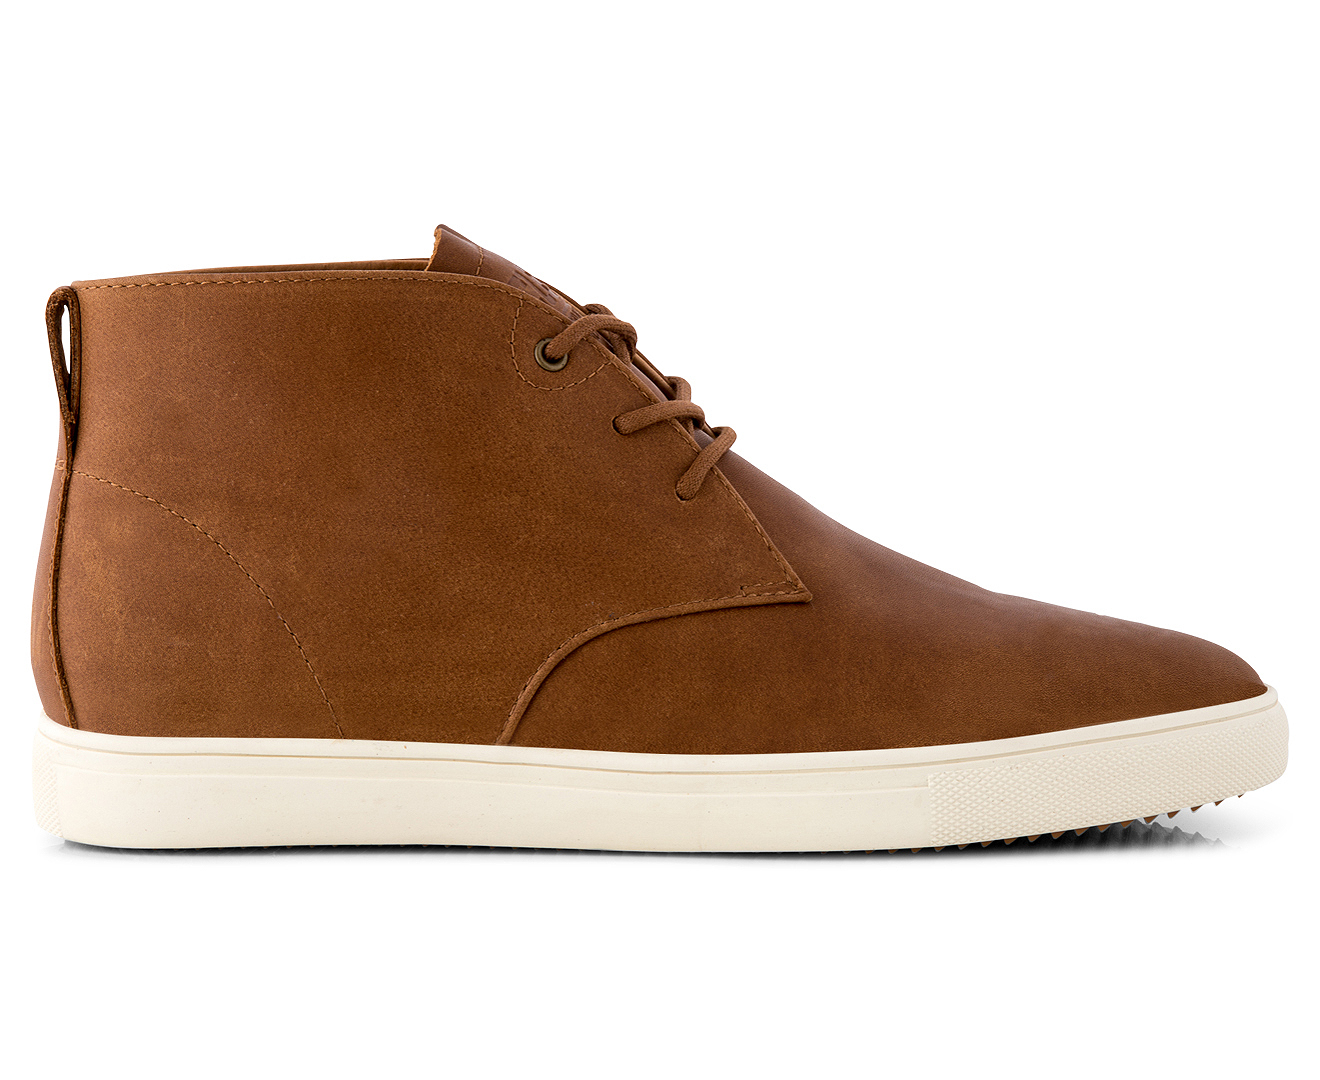 Details about Clae Men's Strayhorn SP Shoe - Grizzly Tan